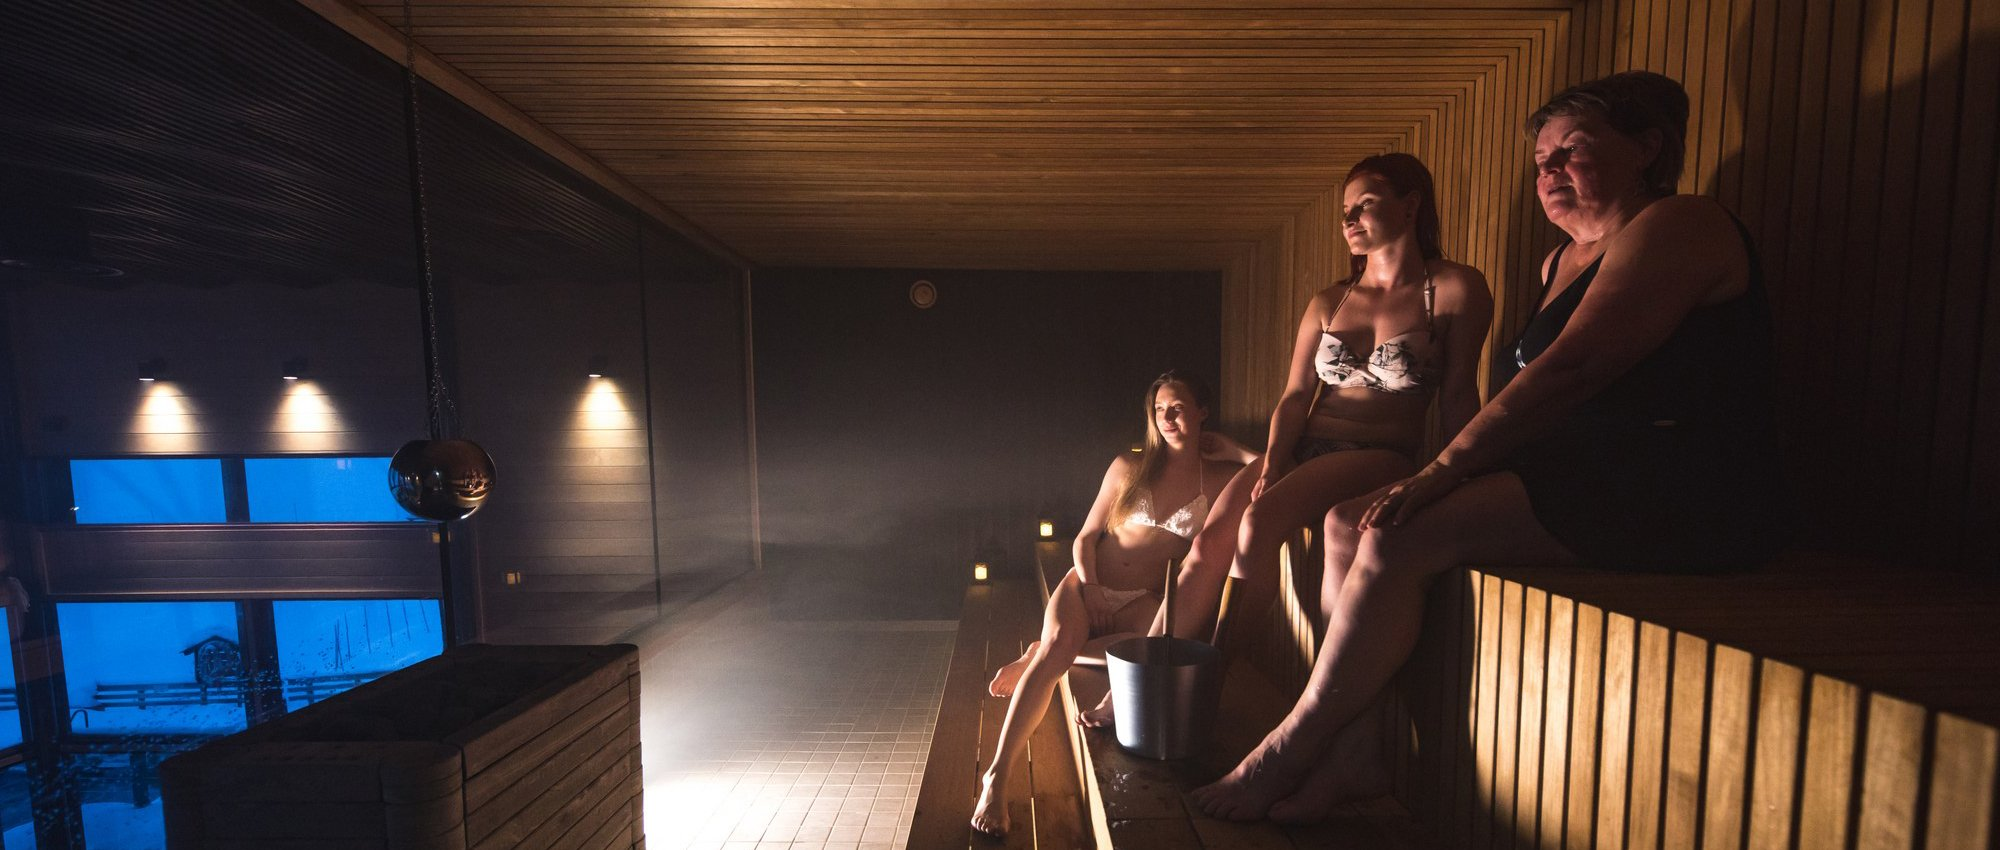 Ladies relaxing in second floor sauna